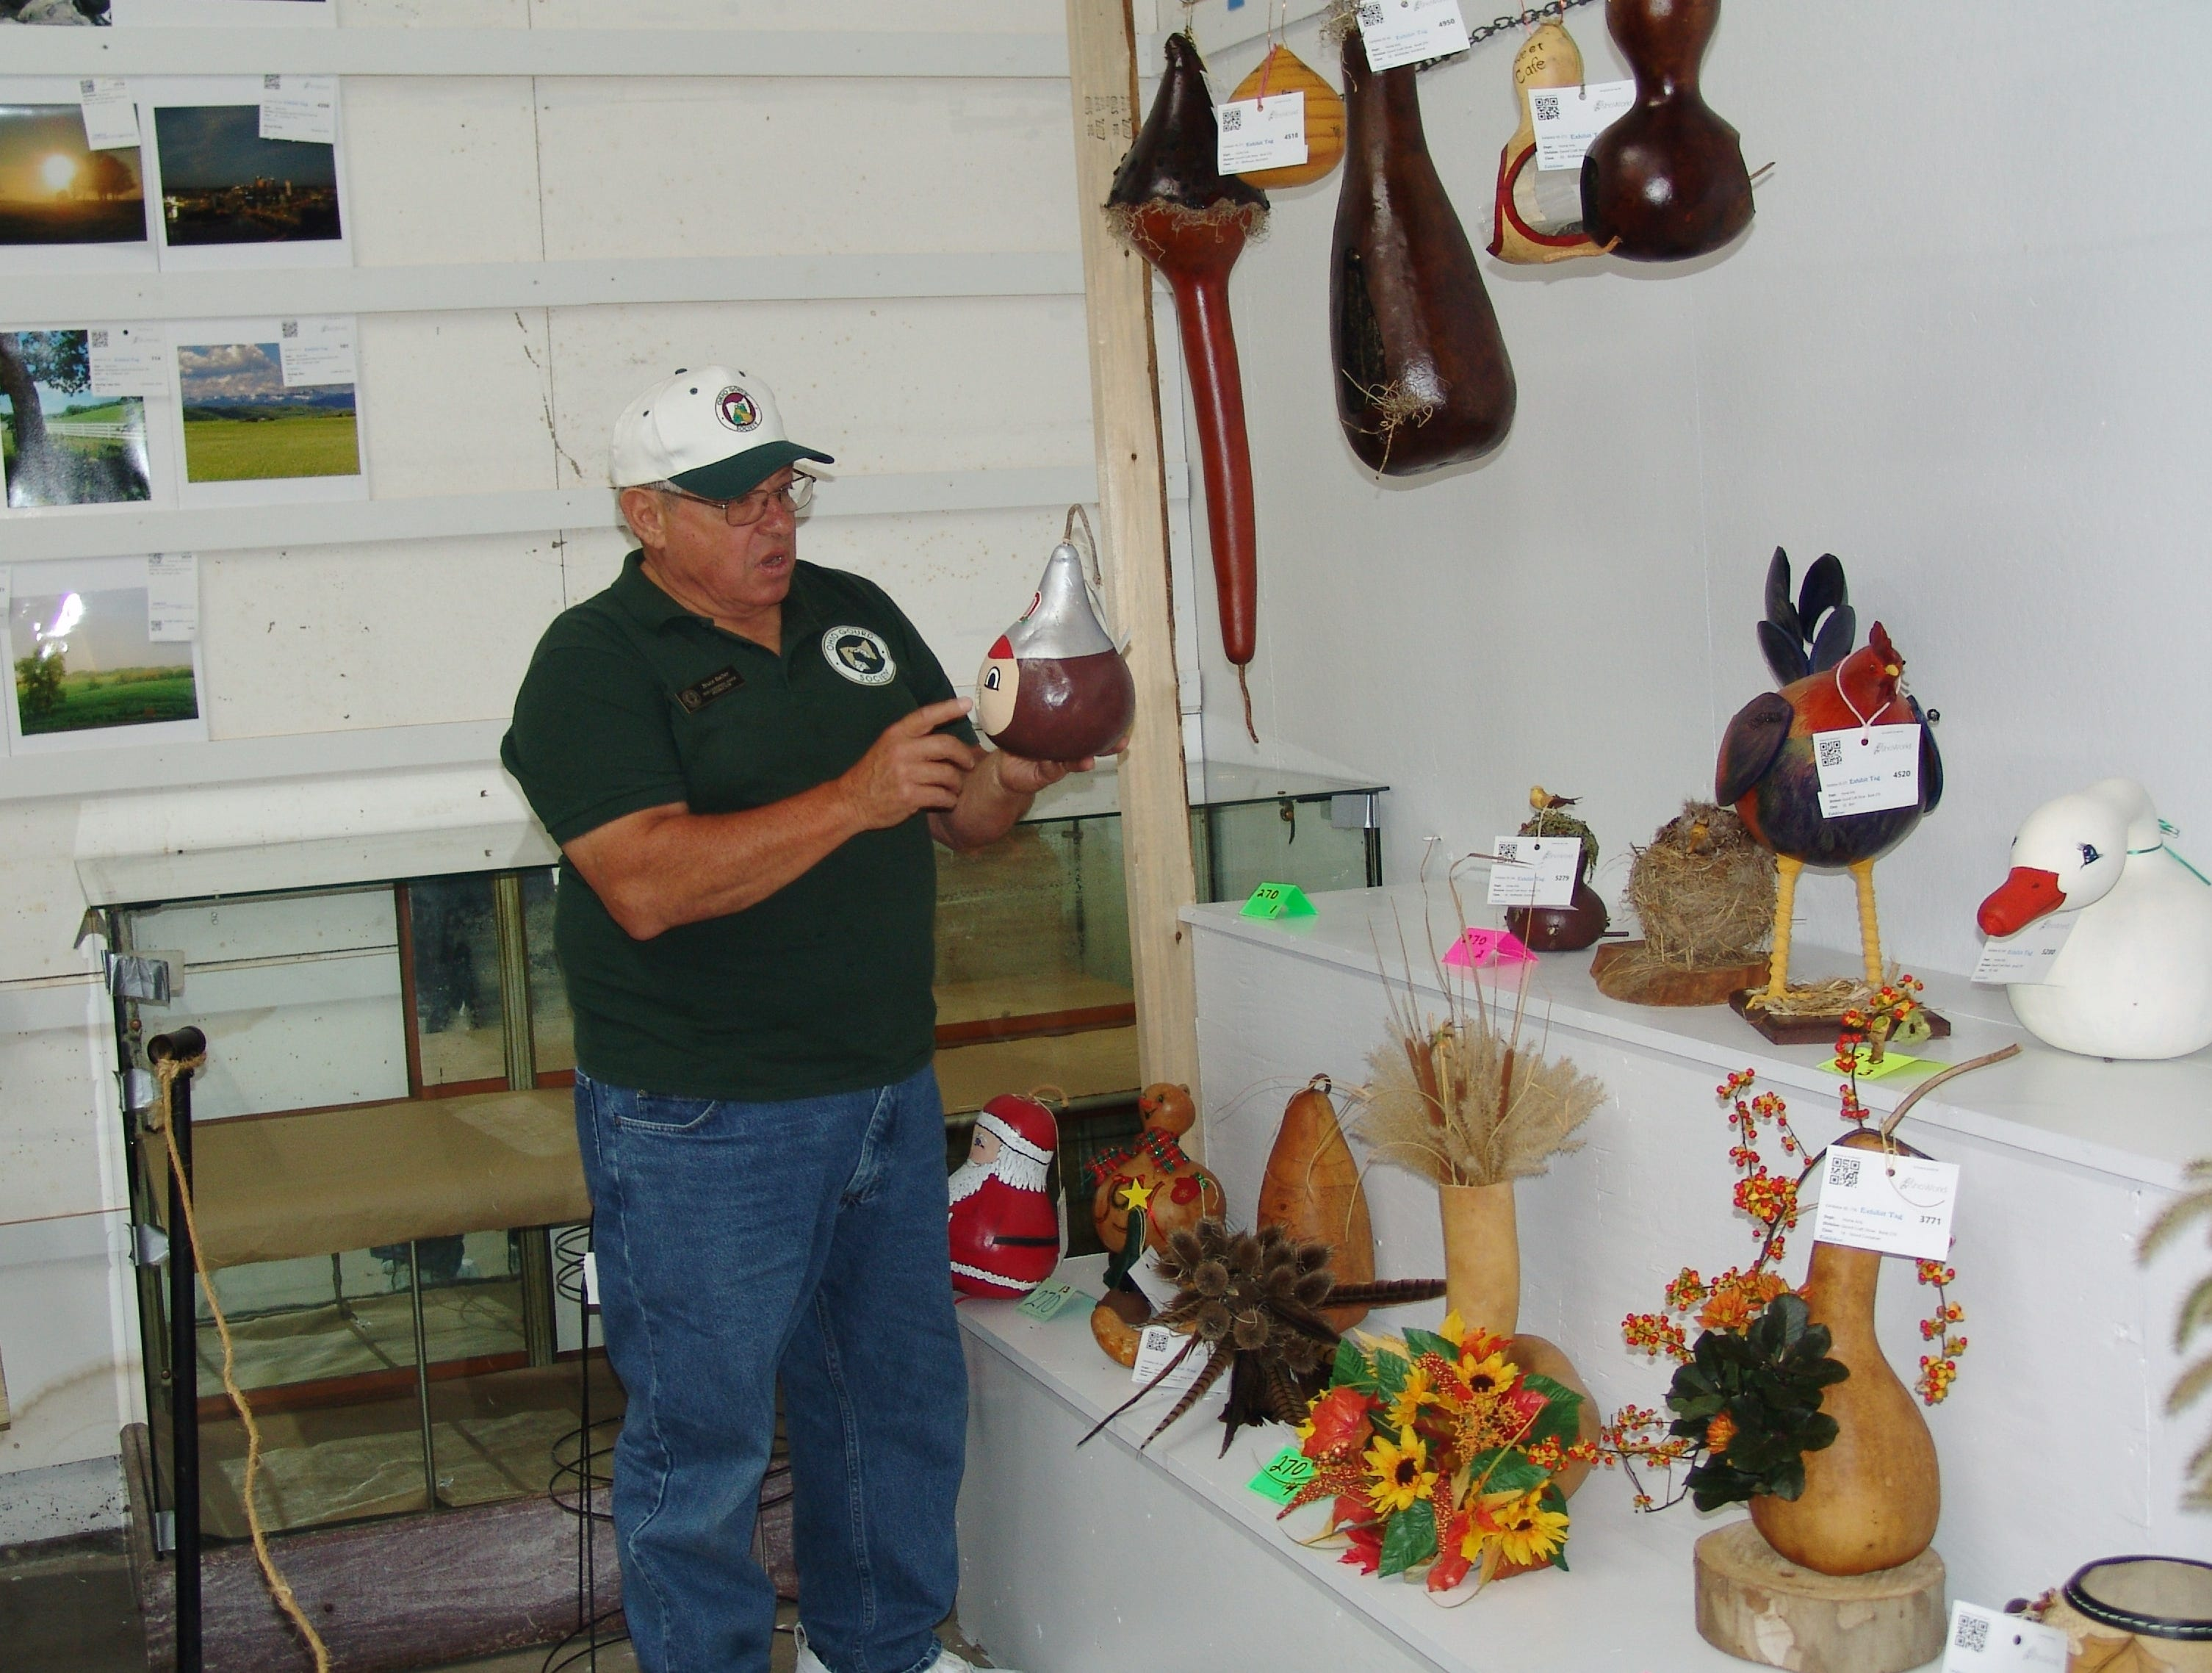 Gourd judge Bruce Barber looks at decorative gourd birdhouse during Friday's judging.